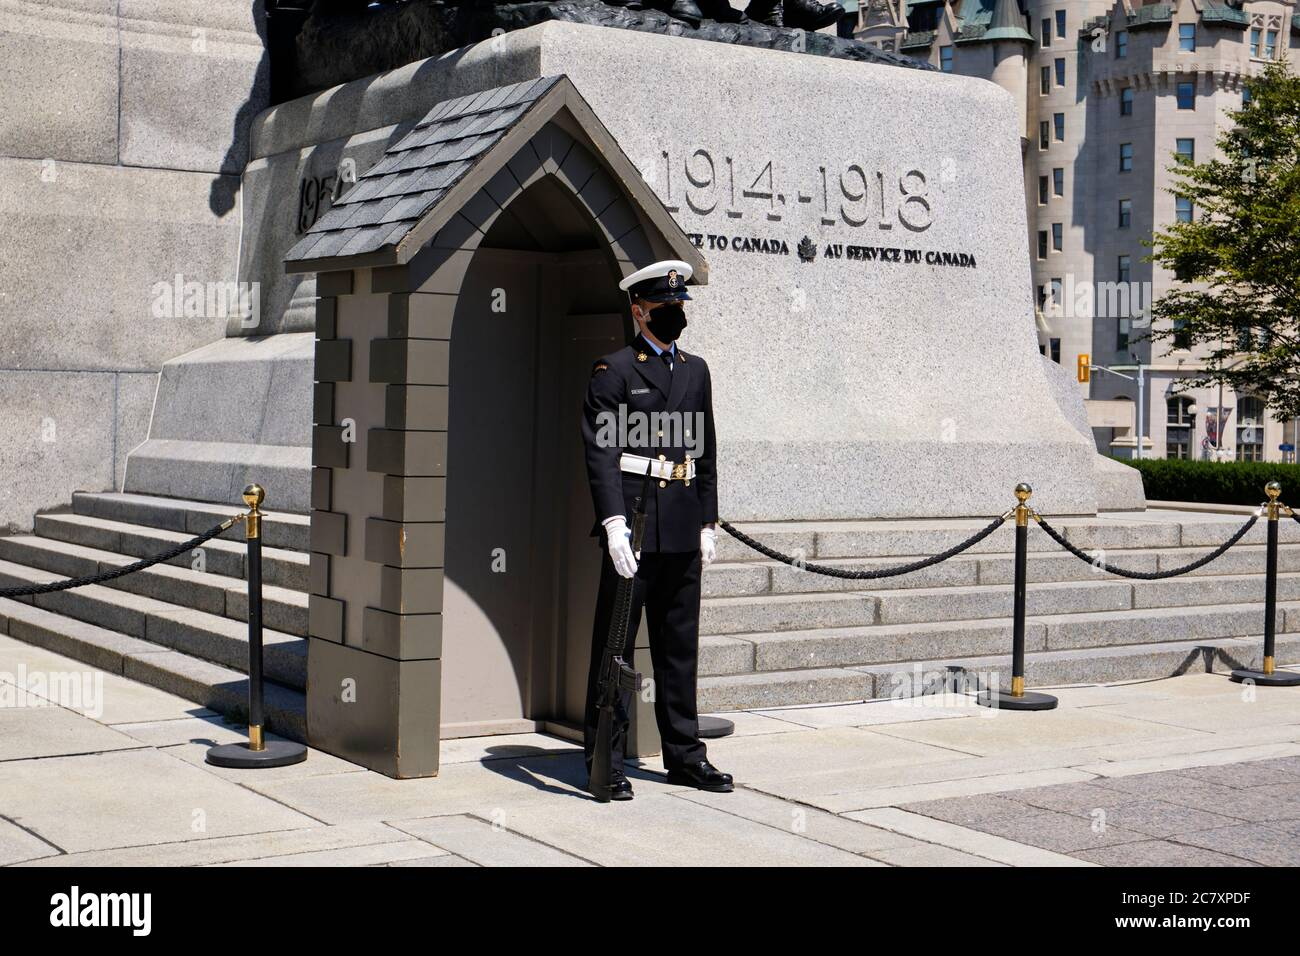 military-guard-with-protective-face-mask-due-to-ongoing-pandemic-at-the-canadian-war-memorial-in-ottawa-2C7XPDF.jpg